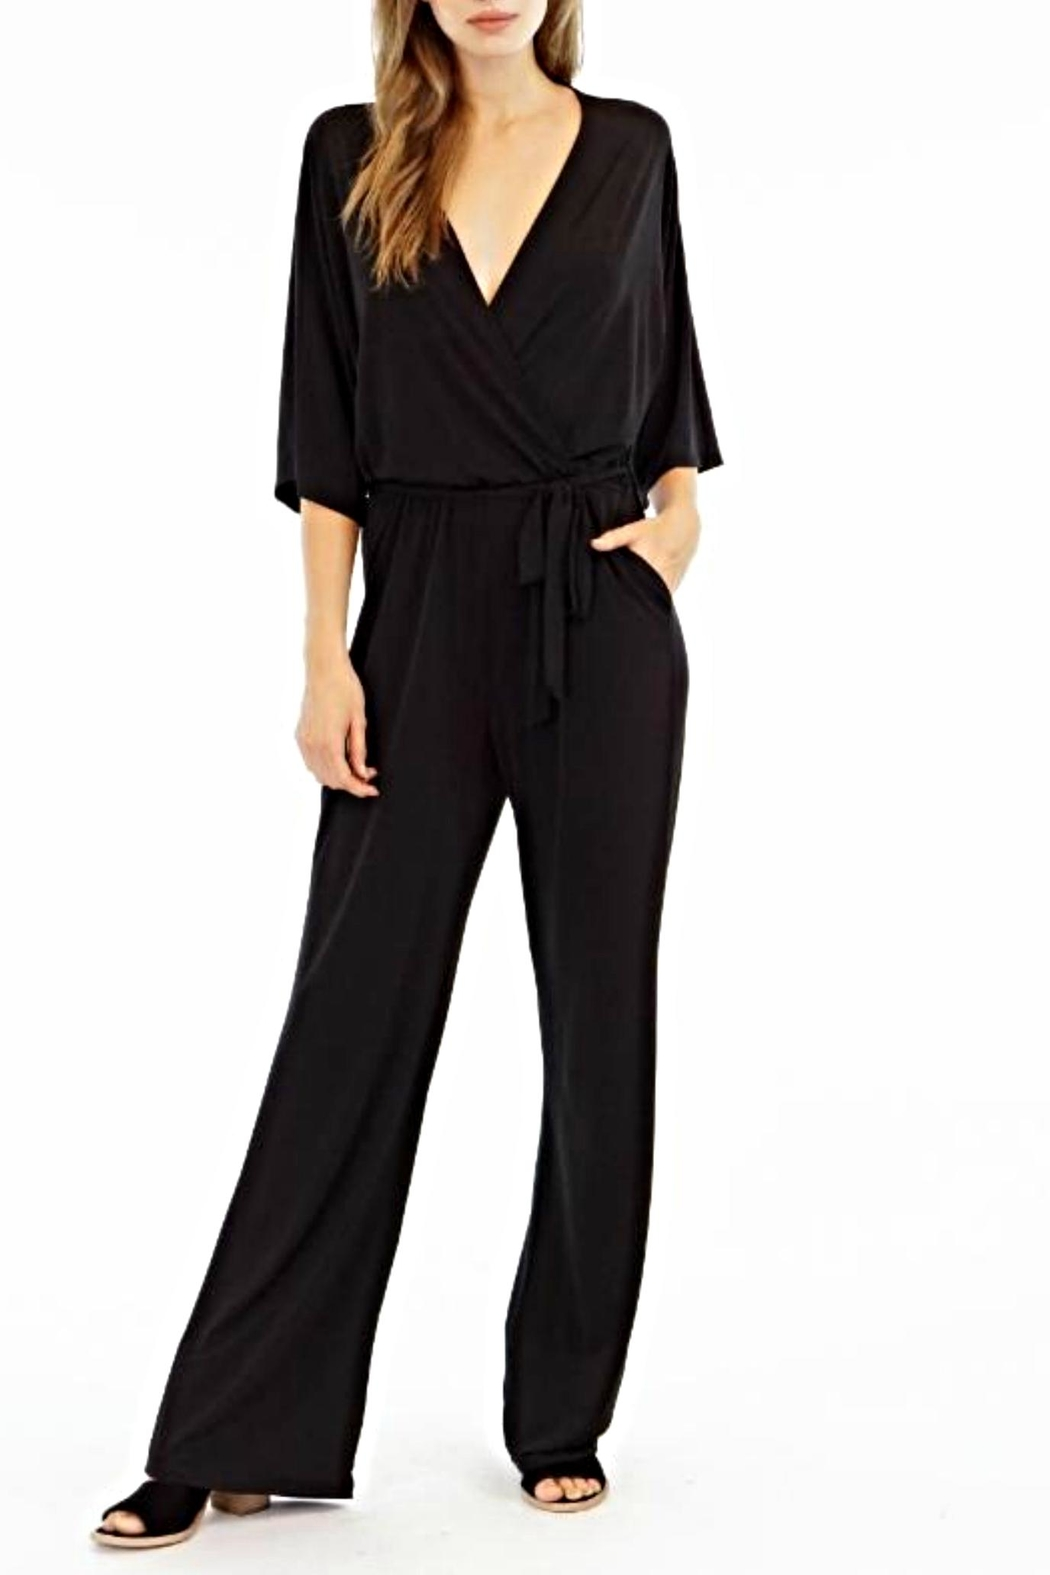 Veronica M Kimono Jumpsuit - Front Cropped Image